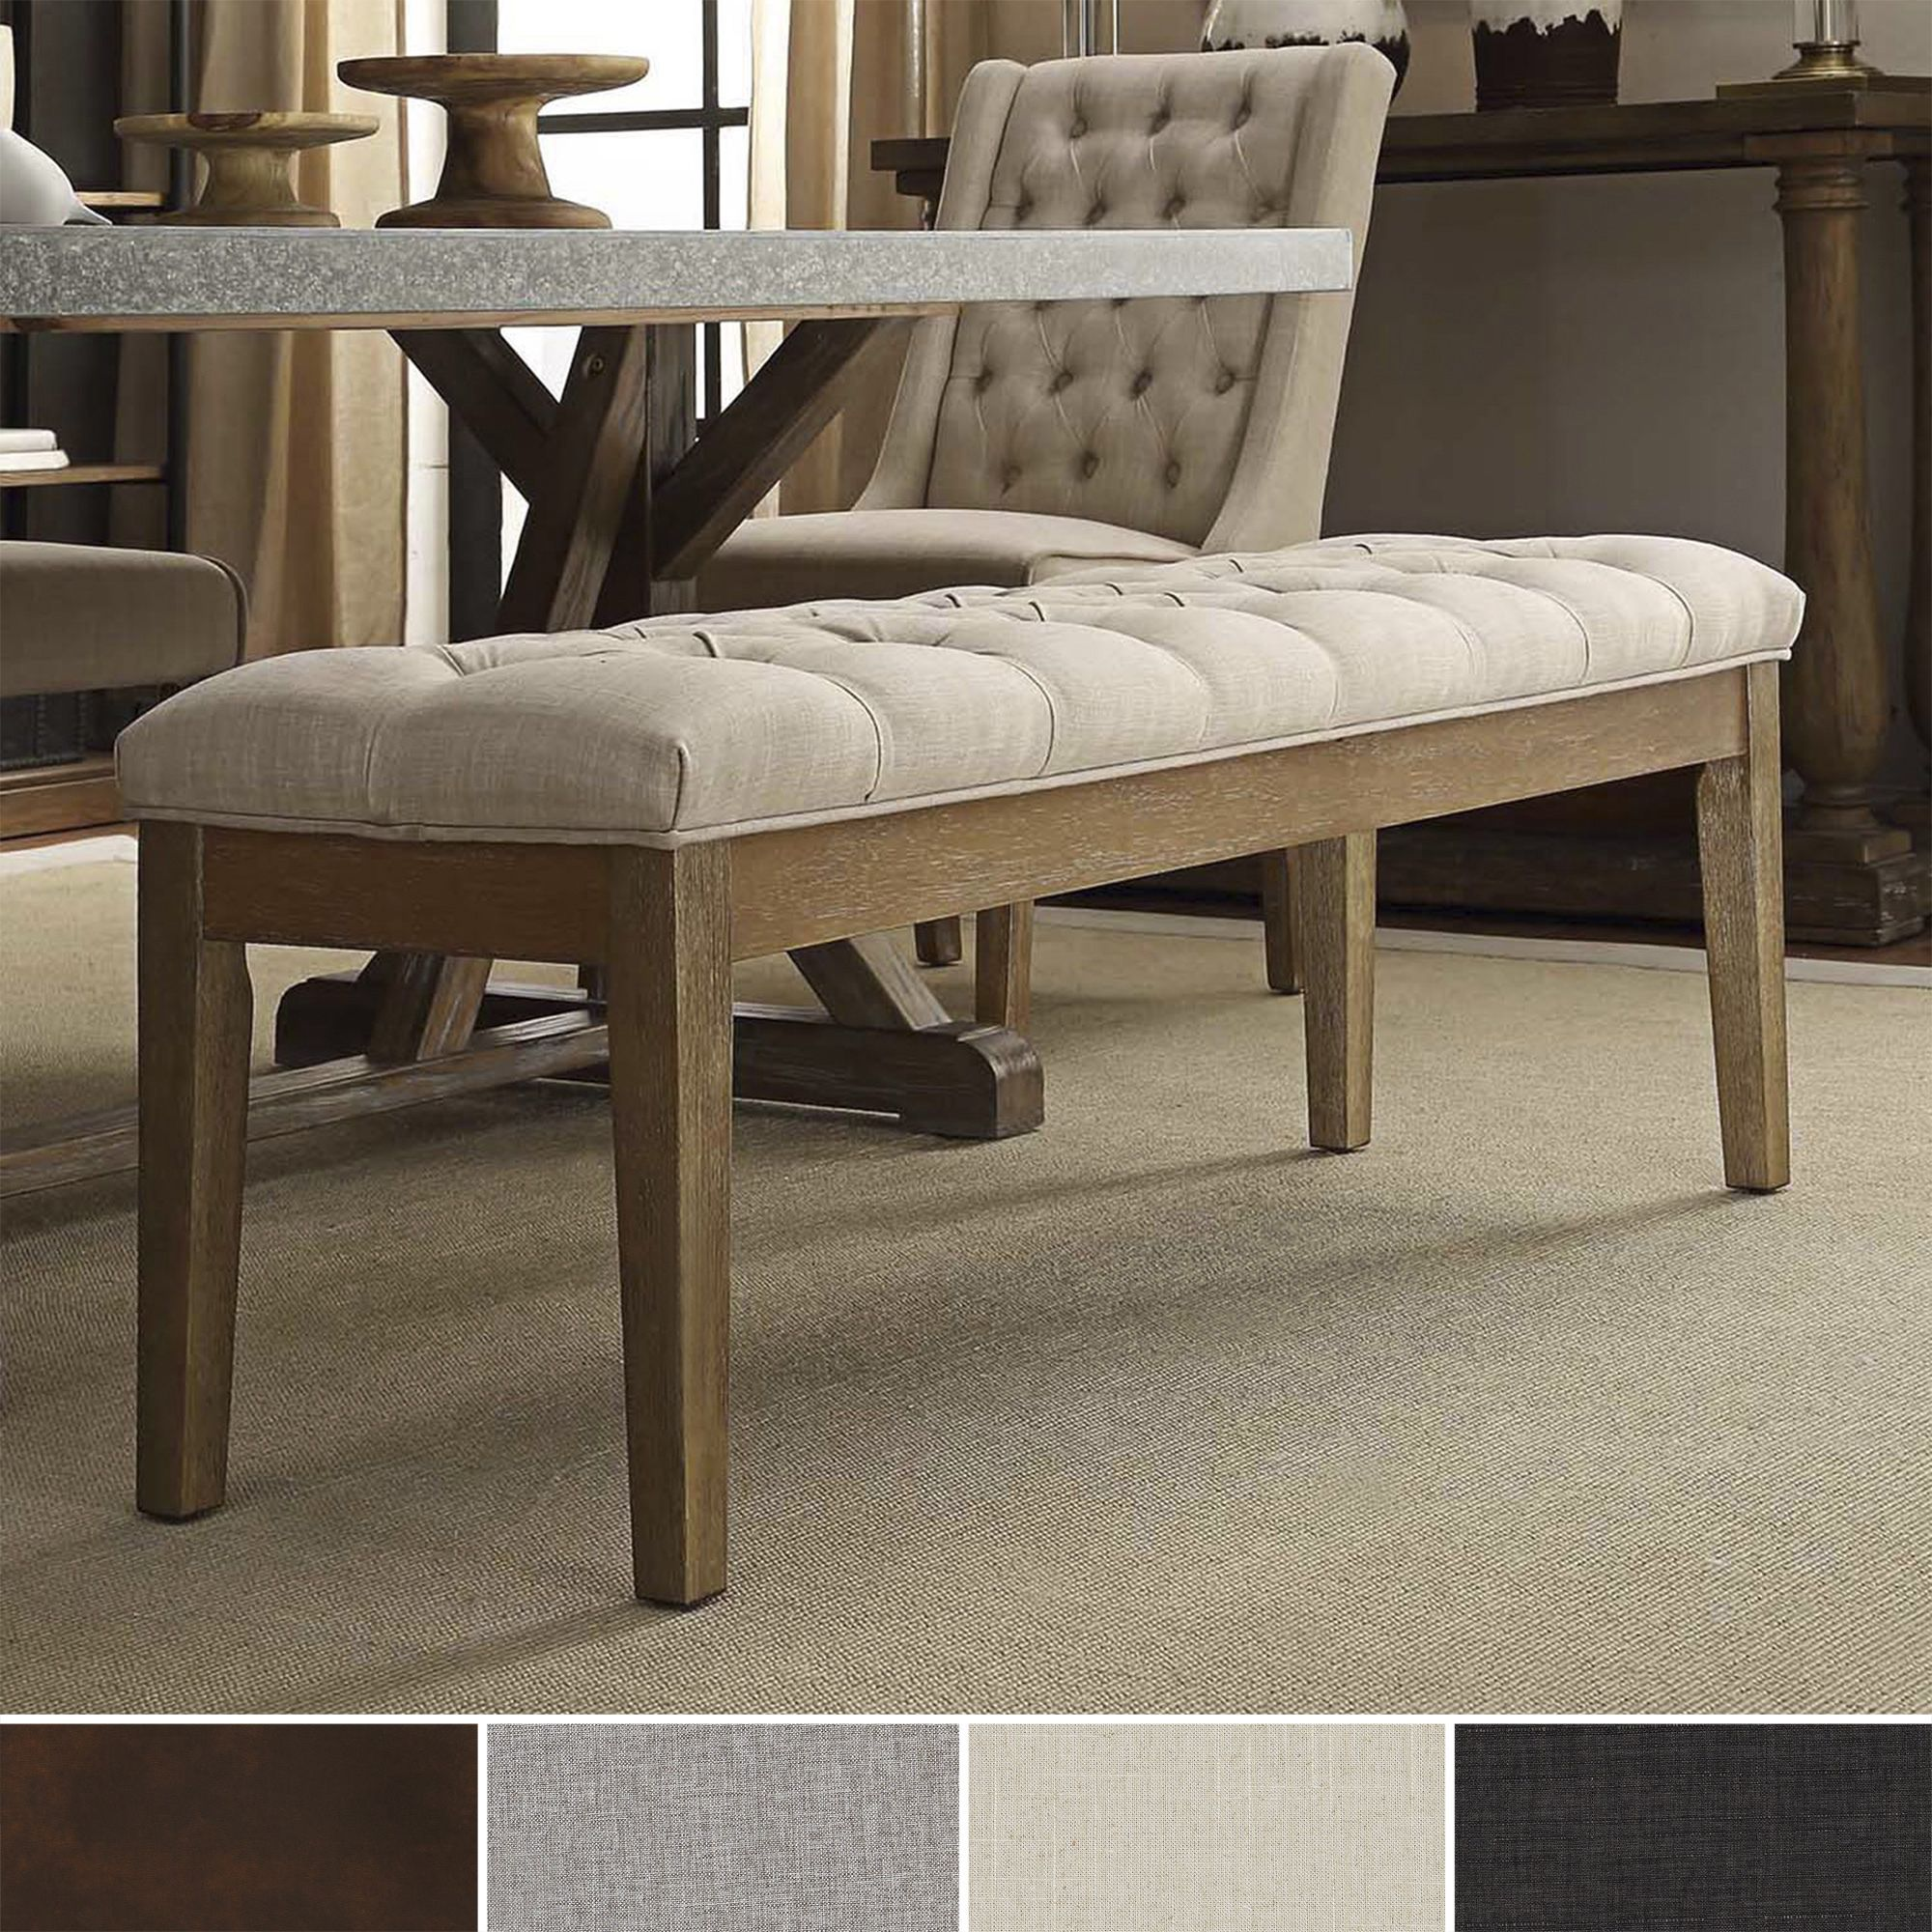 Elegant And Versatile This Bench Offers Extra Seating Comes Upholstered In Fabric Deep